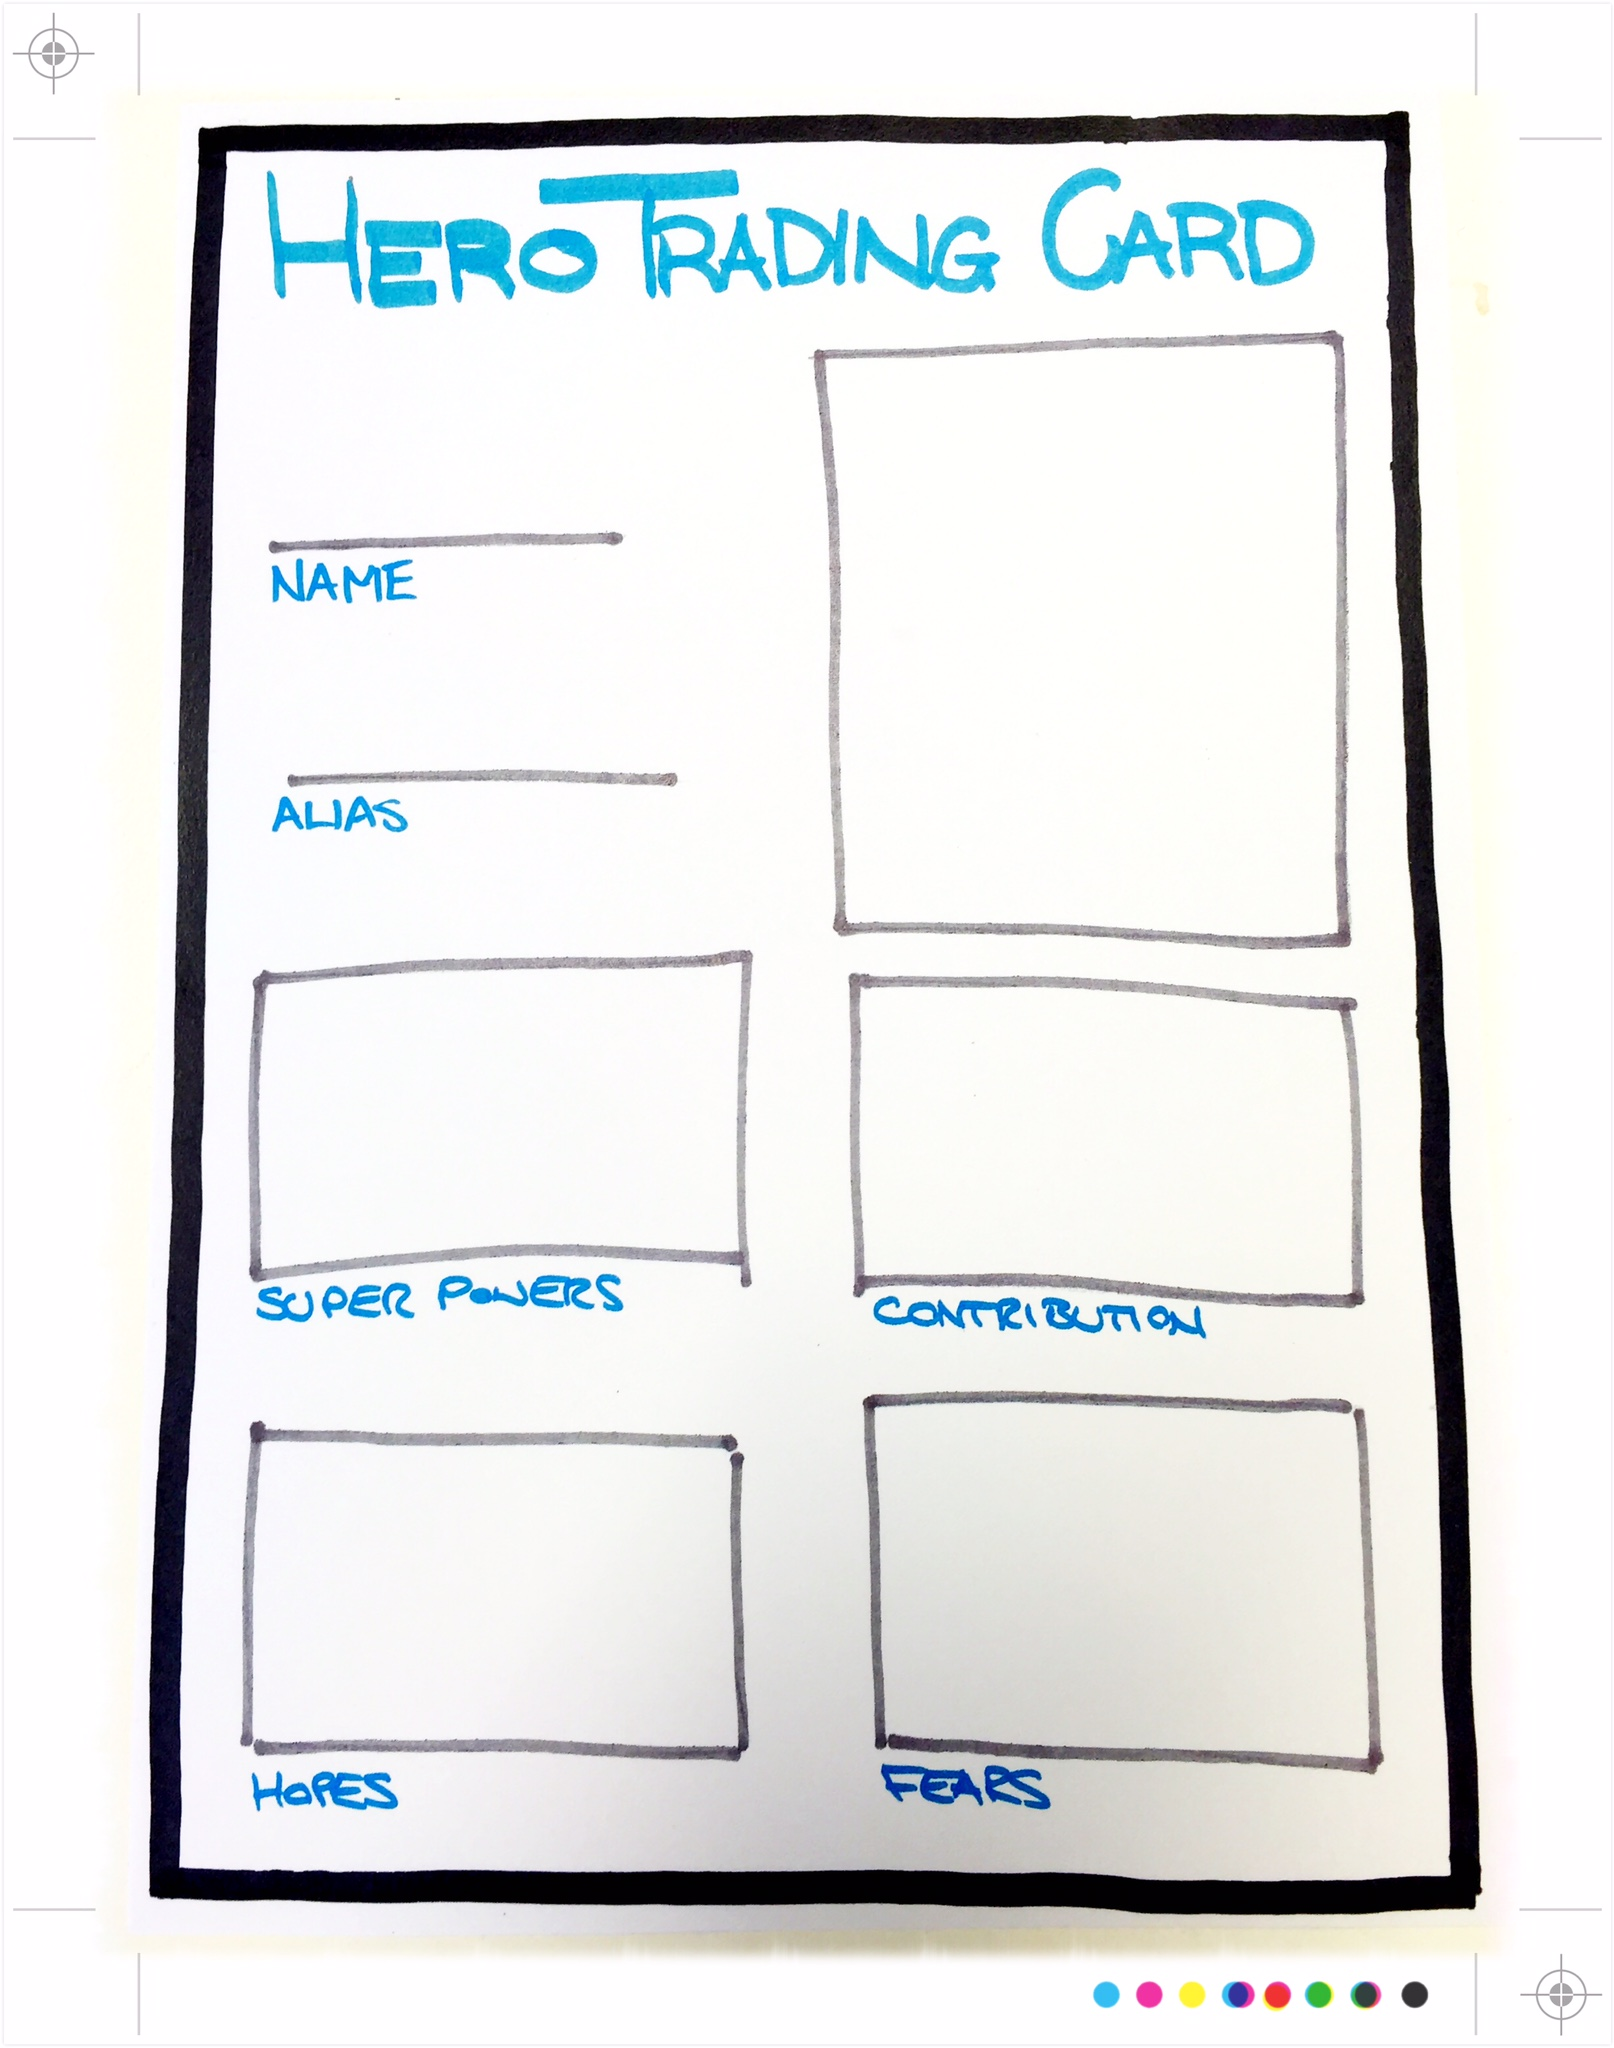 Template Hero Trading Card